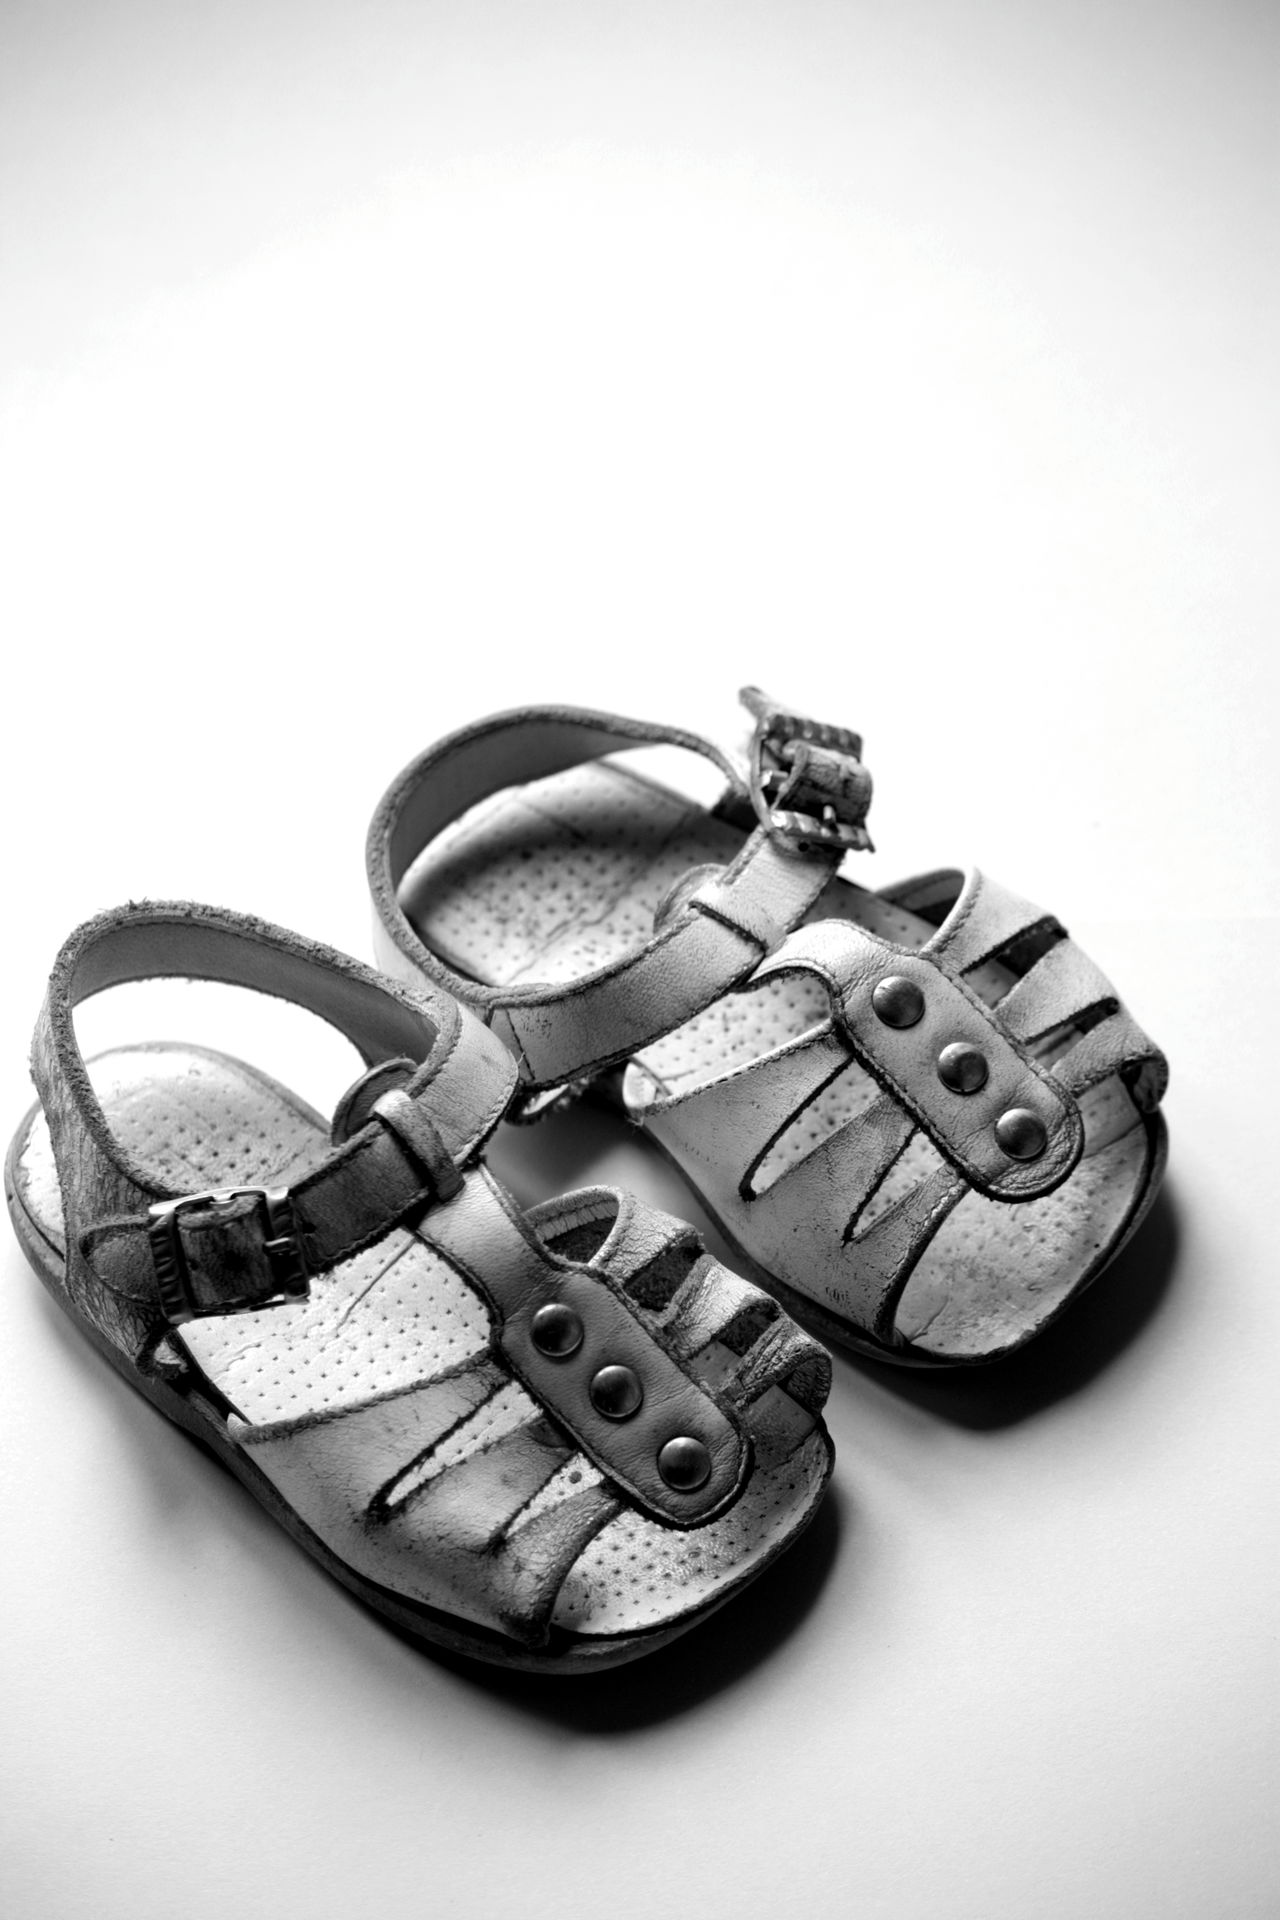 My first pair of shoes Baby Shoes Black And White Black And White Photography Childhood Memories Nostalgia Nostalgic  Old Shoes Retro Styled Sandals Still Life The Past